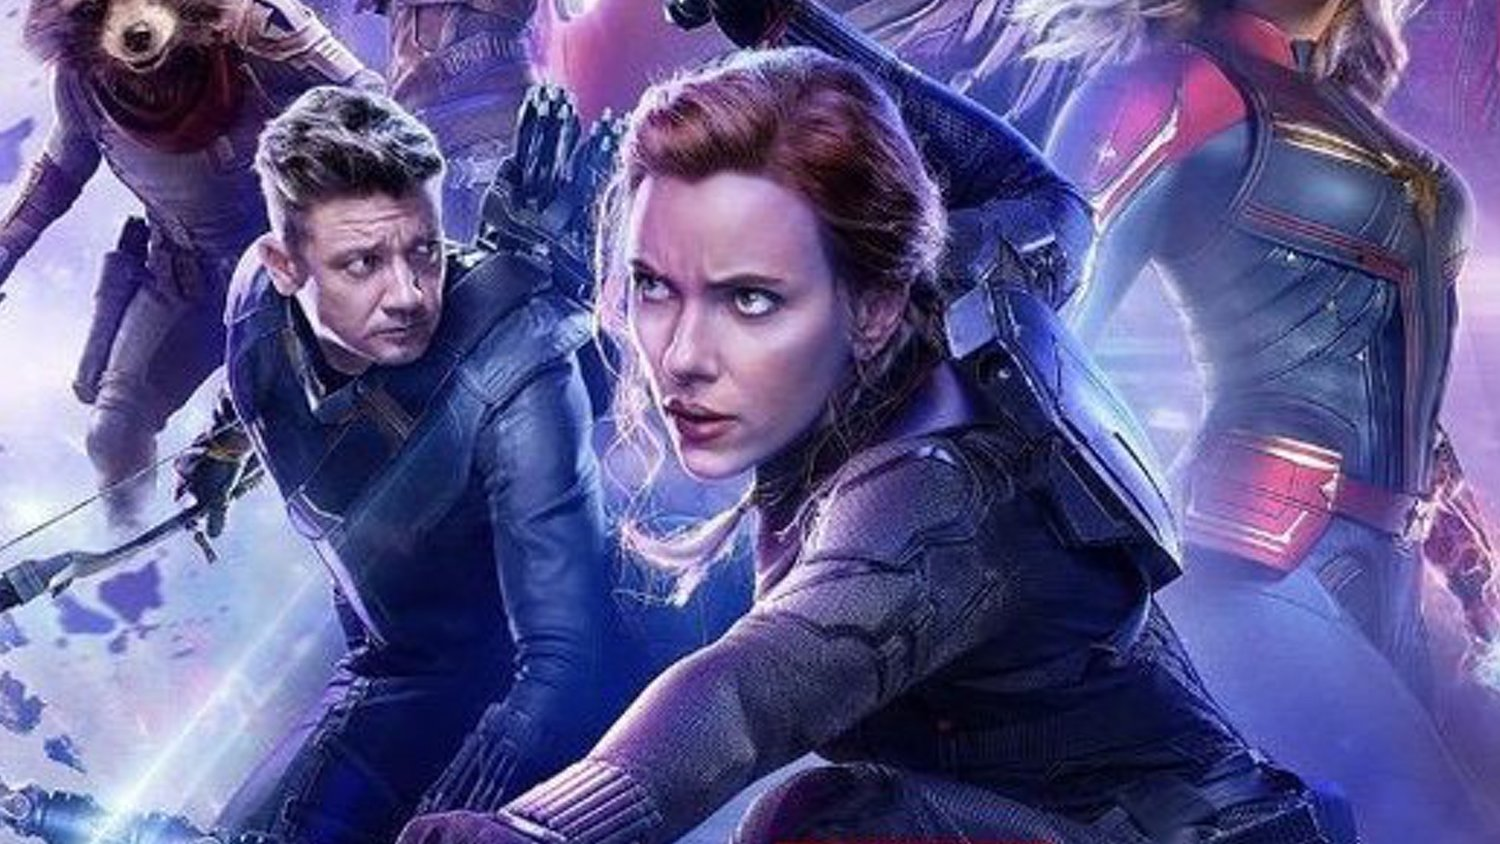 Poster Art Revealed For Marvel S Black Widow Film And